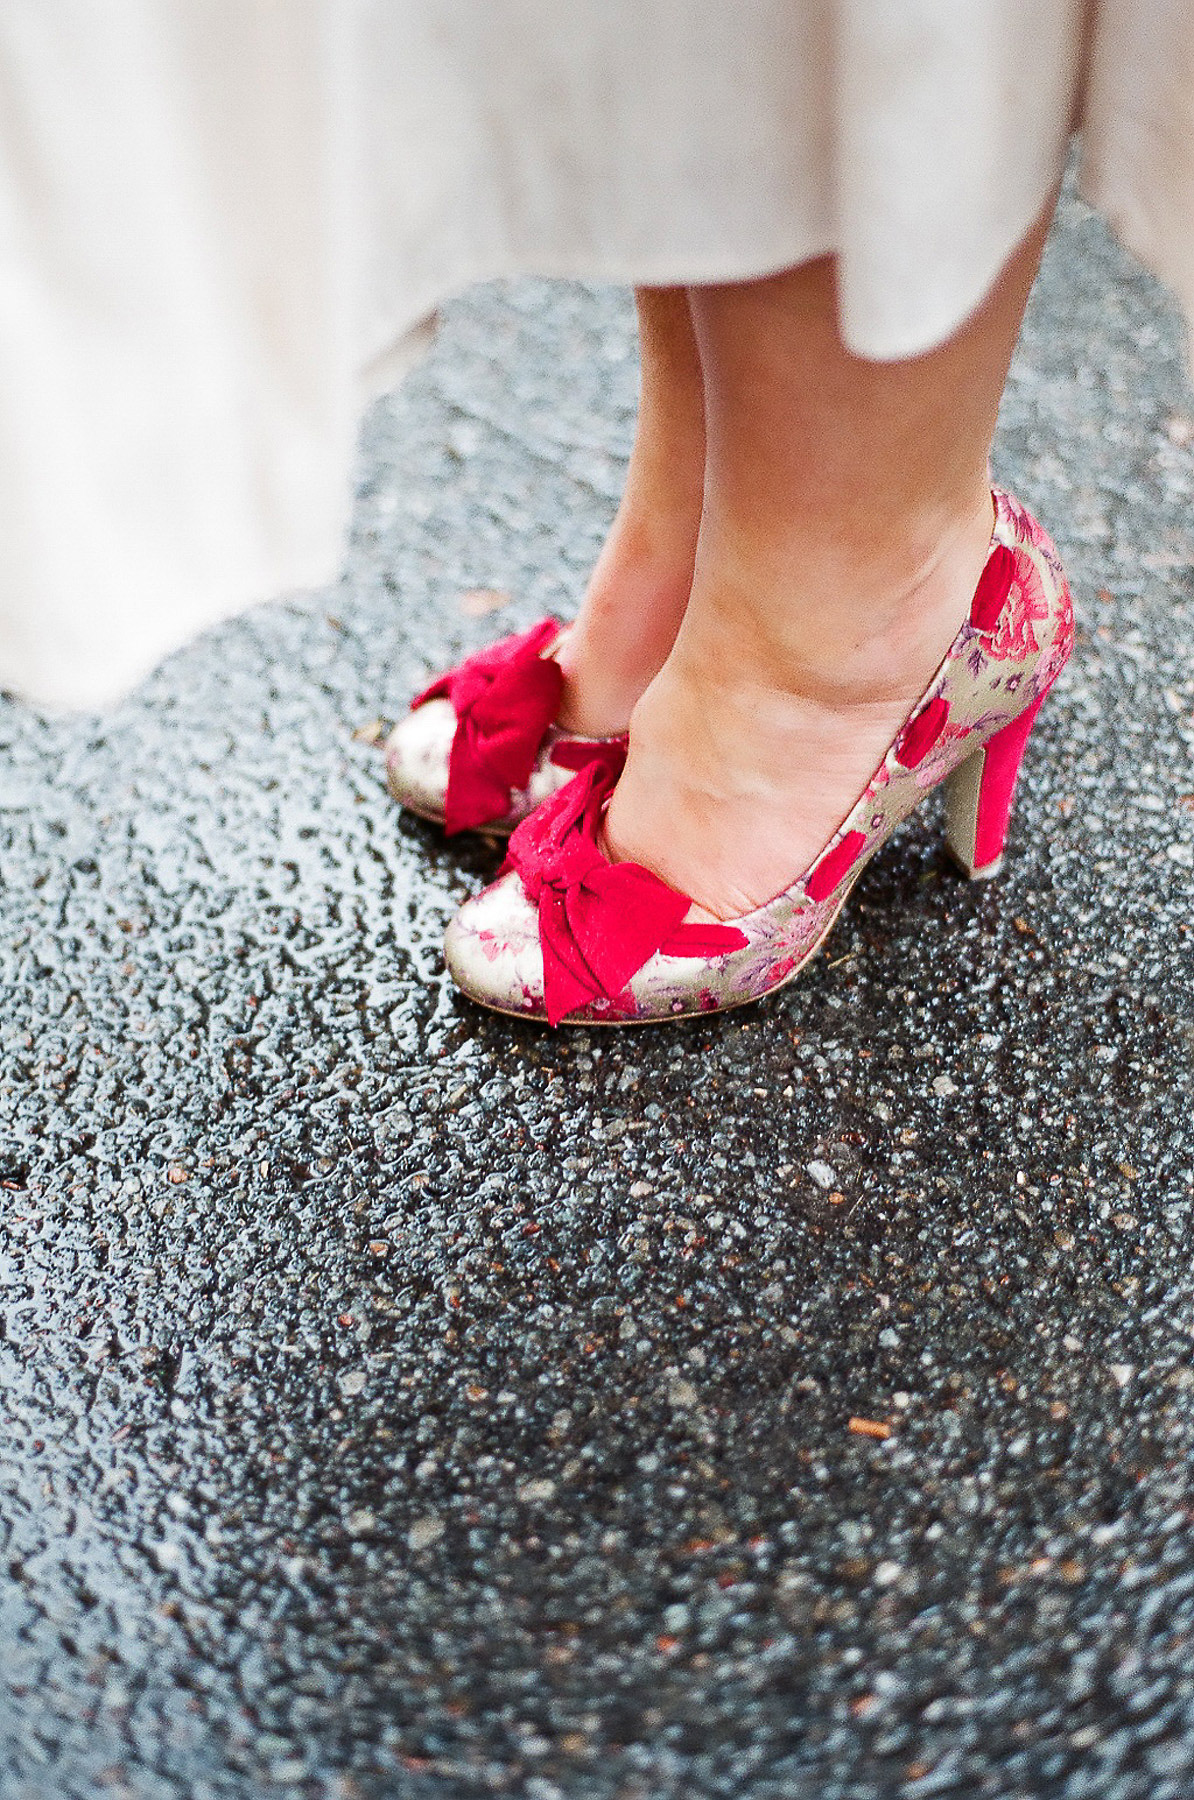 elopement wedding day photo of brides colorful shoes by wendy g photography